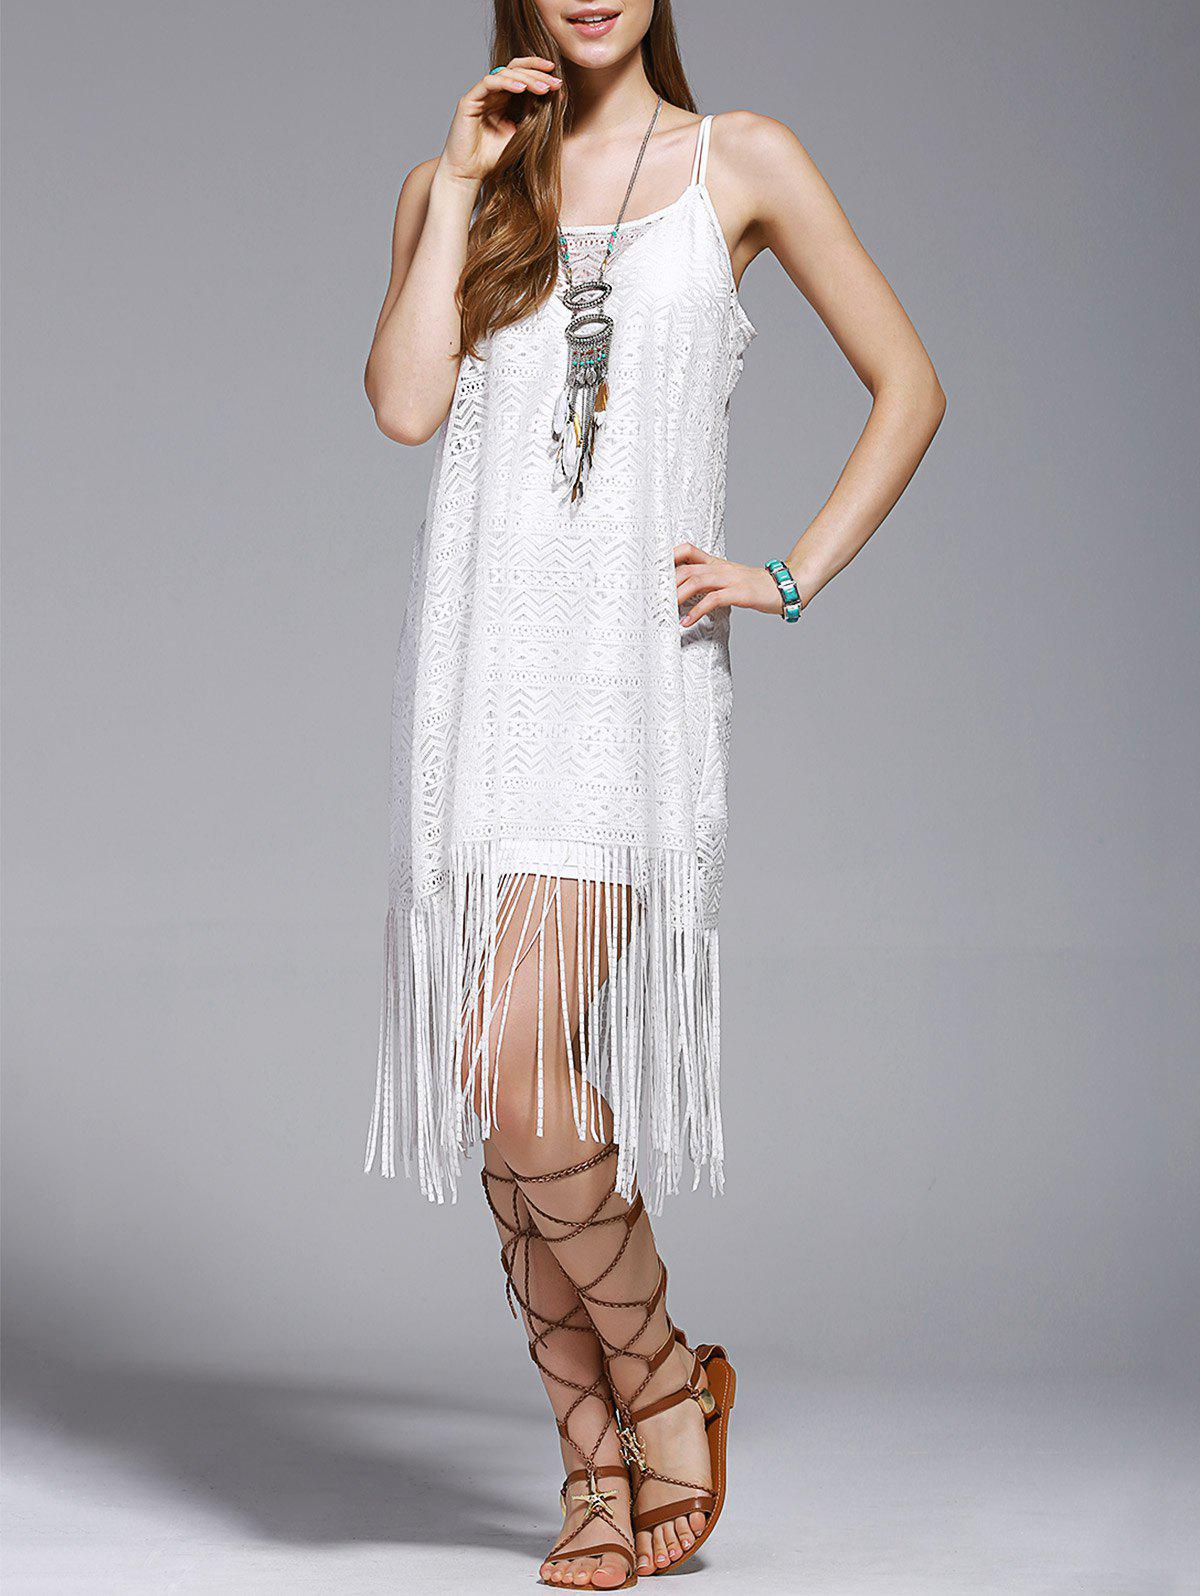 Stylish Tassel Spaghetti Straps Hollow Out Dress For Women - WHITE S